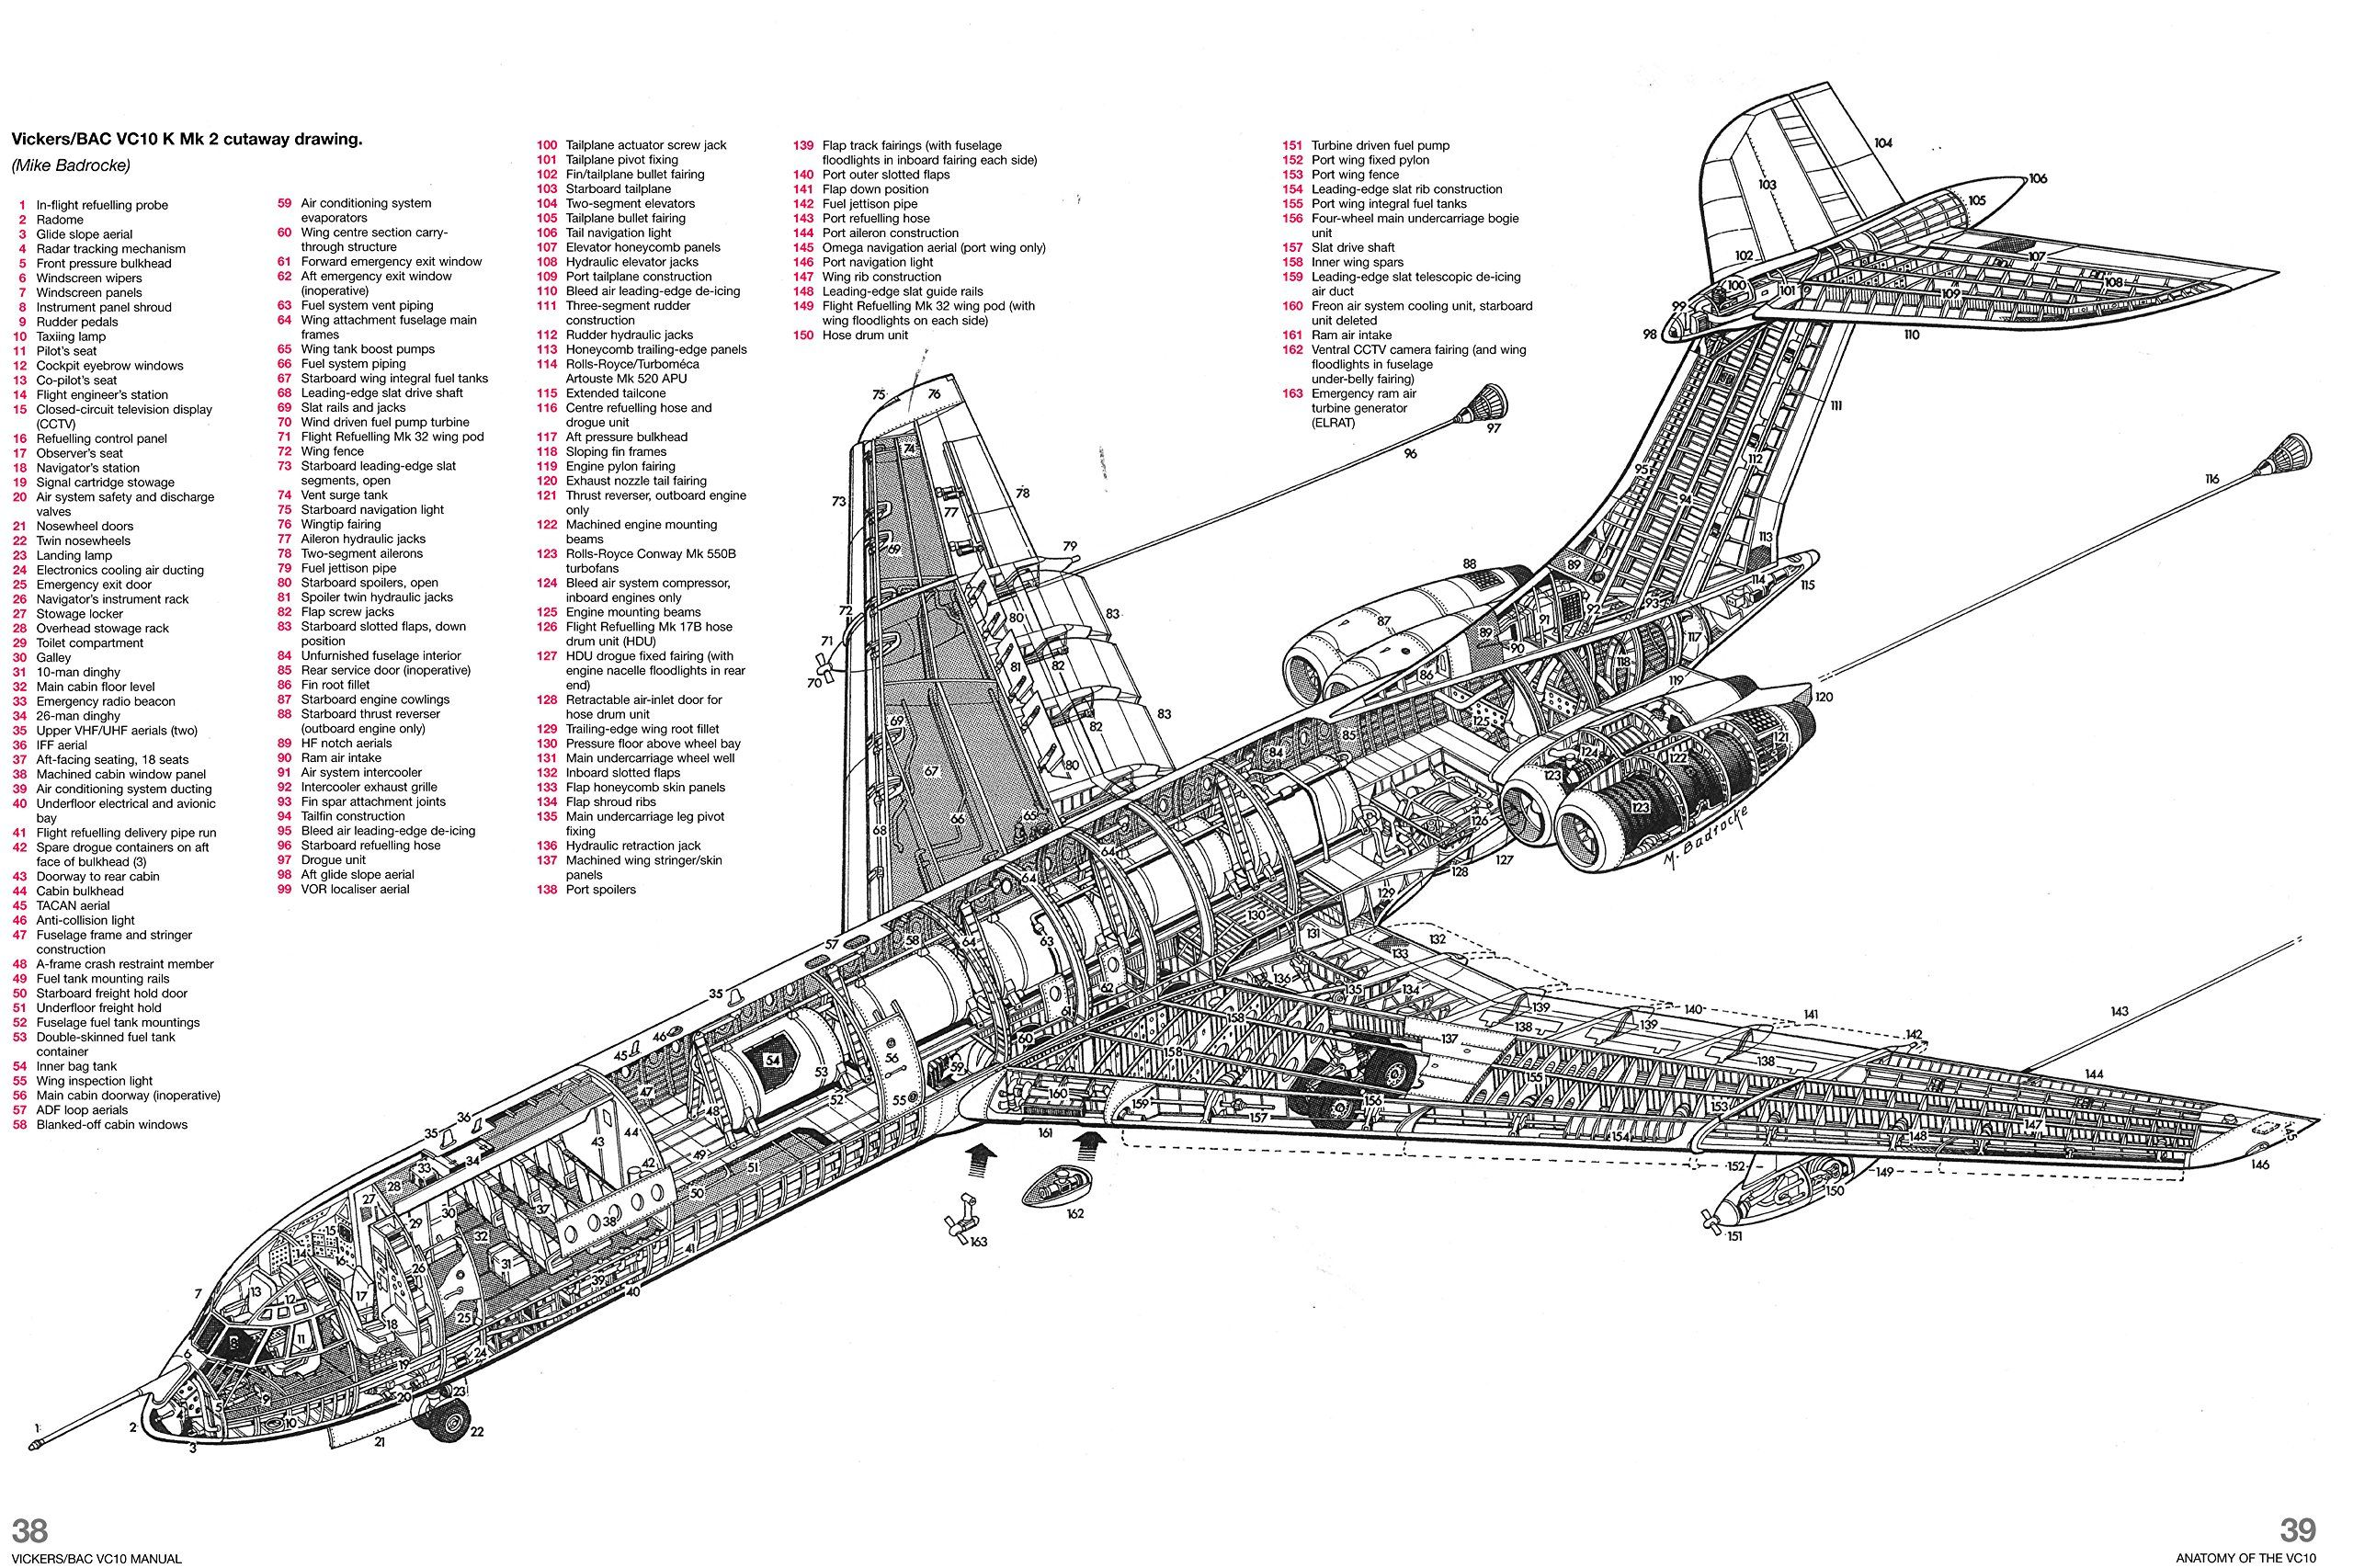 Vickers/BAC VC10 Manual: All Models and Variants (Owners